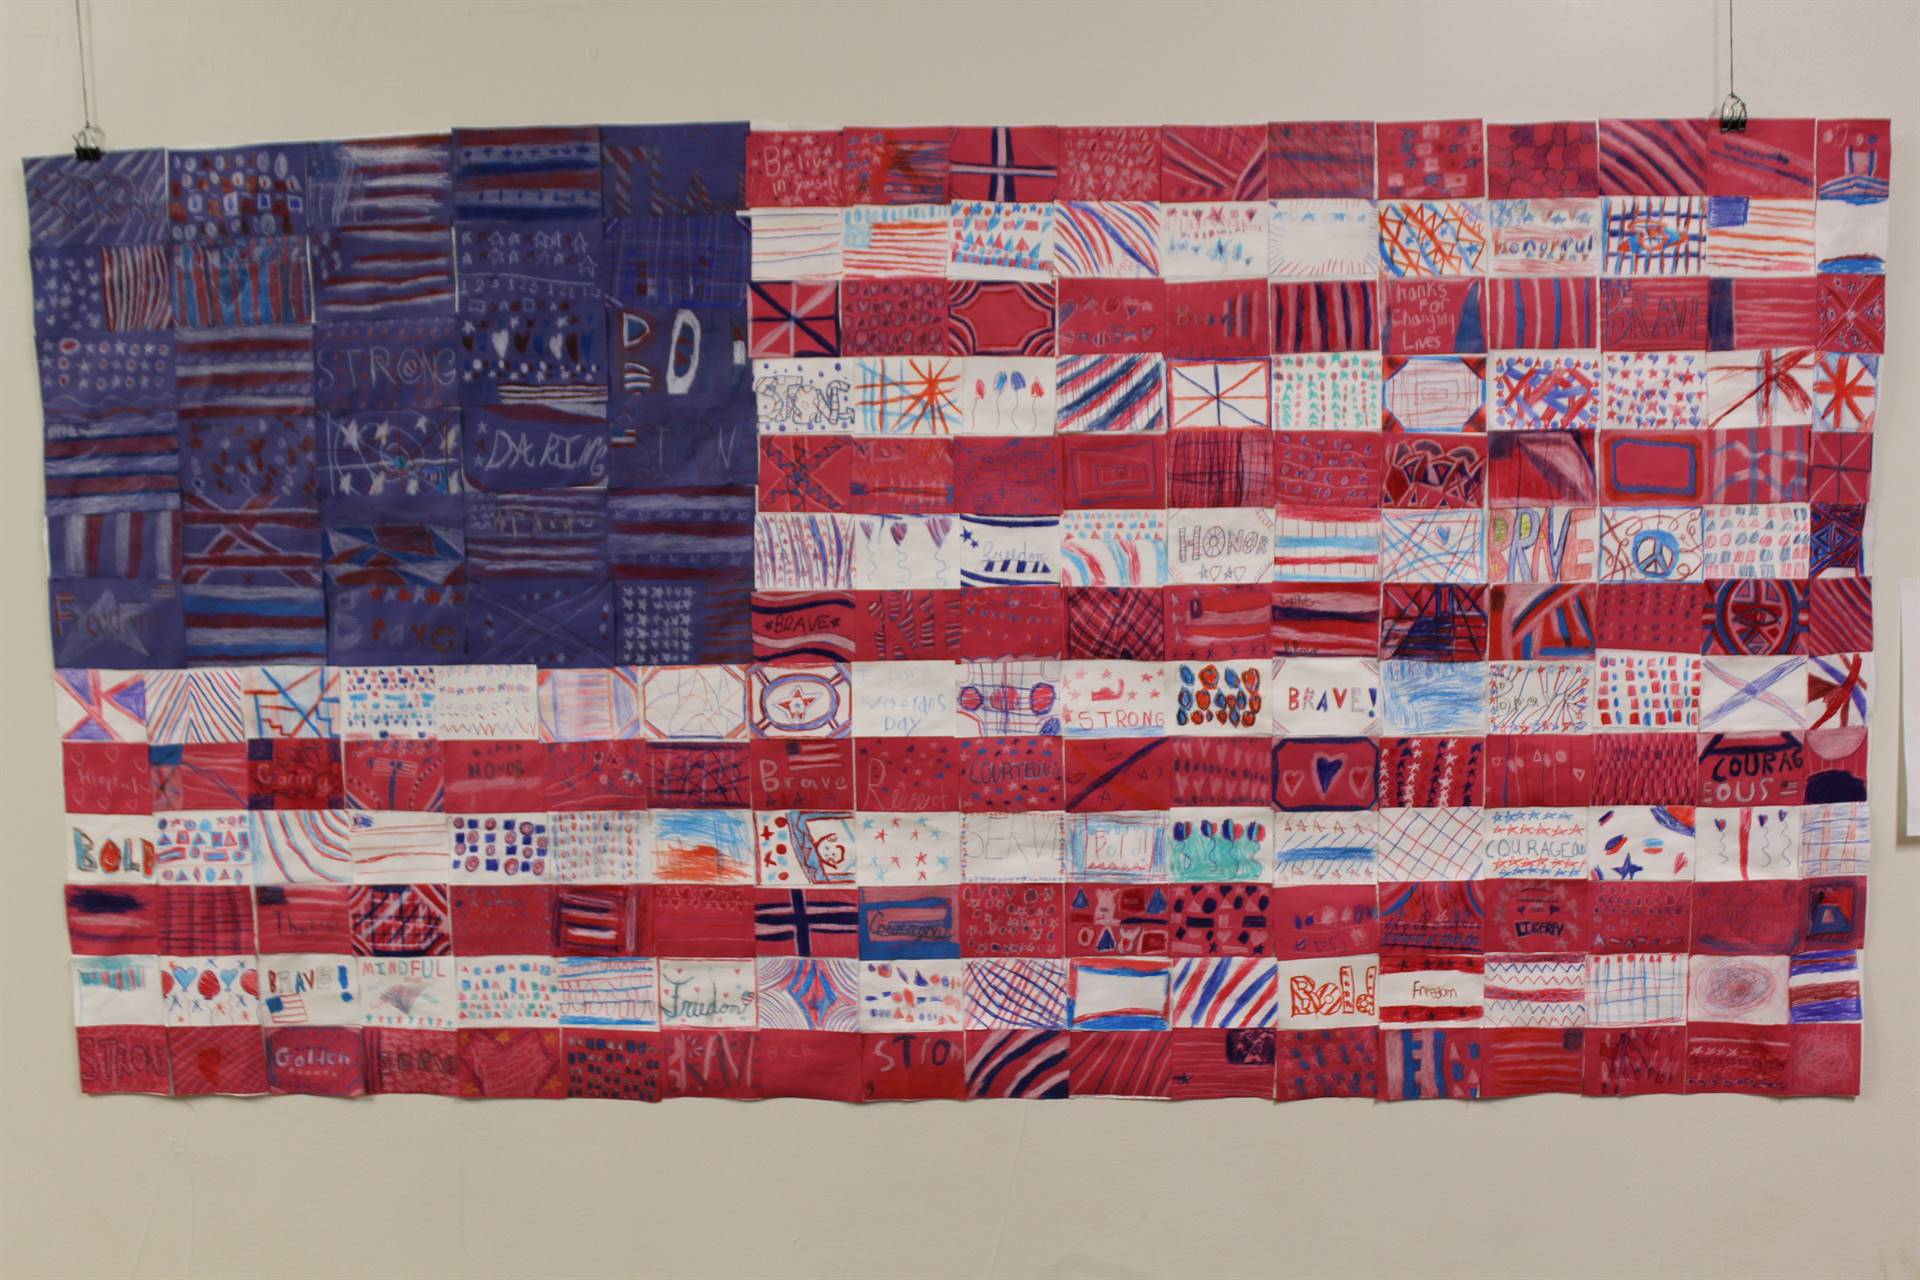 The construction paper mosaic American flag